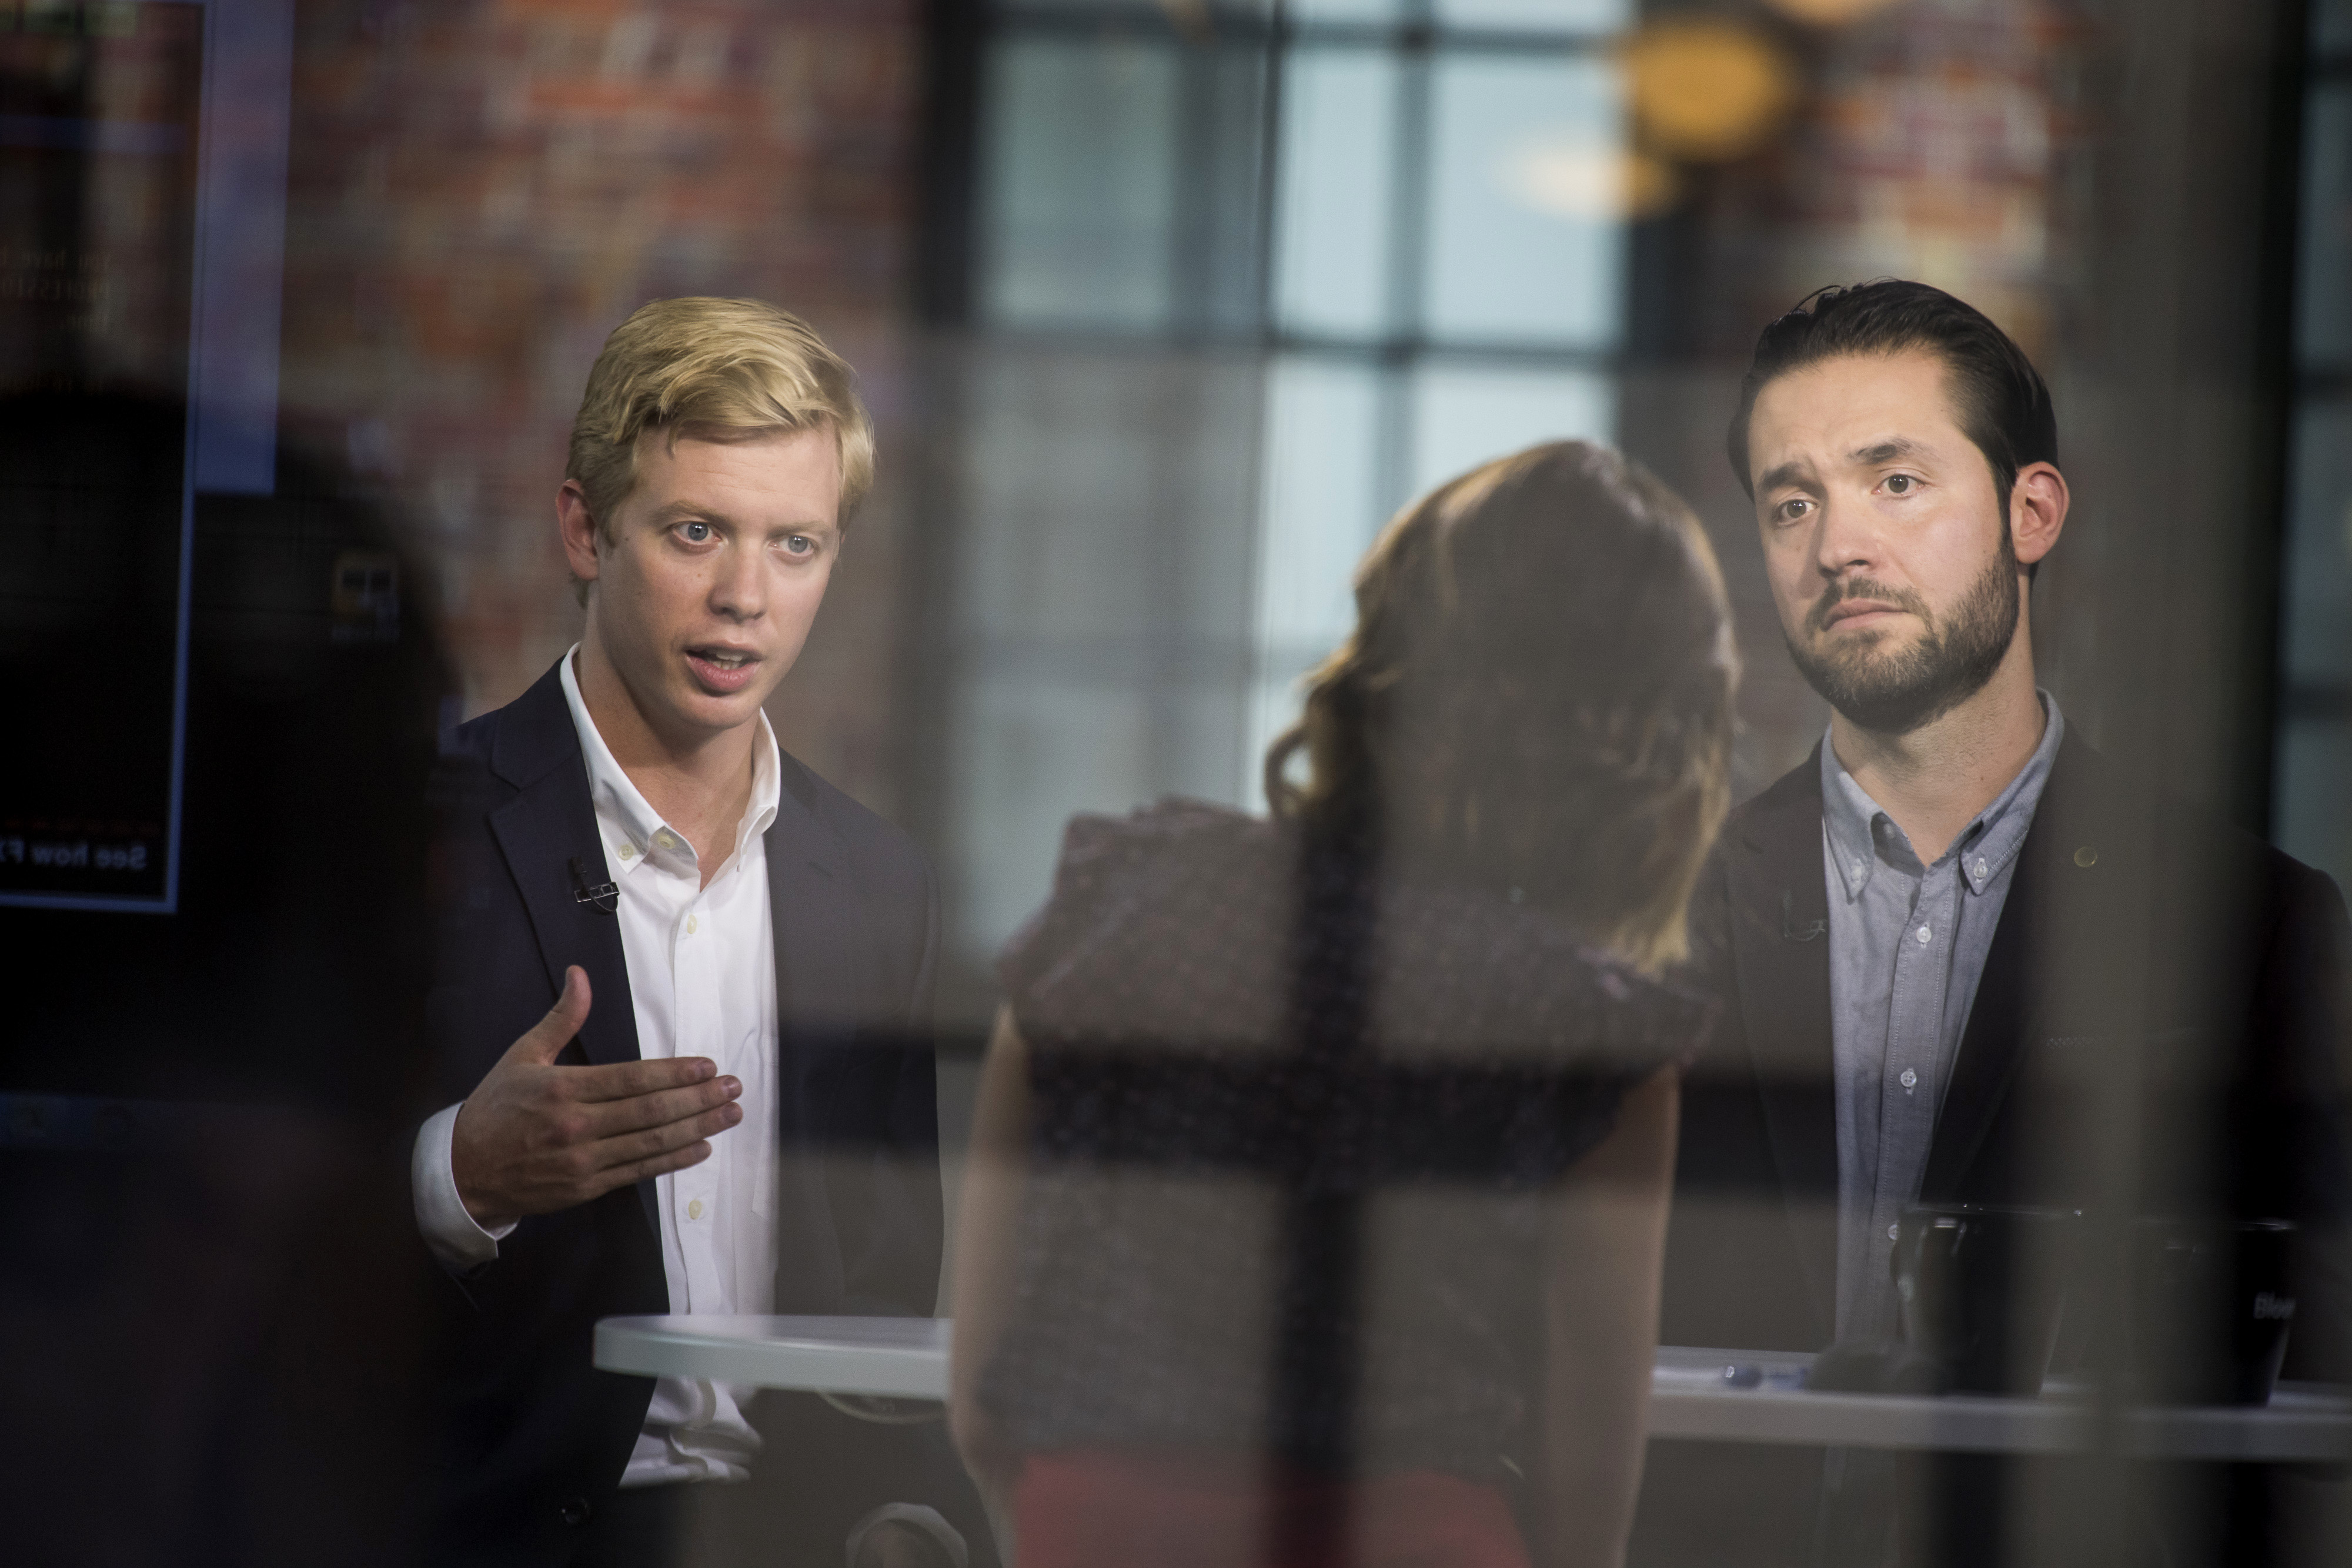 Reddit Inc. Founders Alexis Ohanian And Steve Huffman Interview